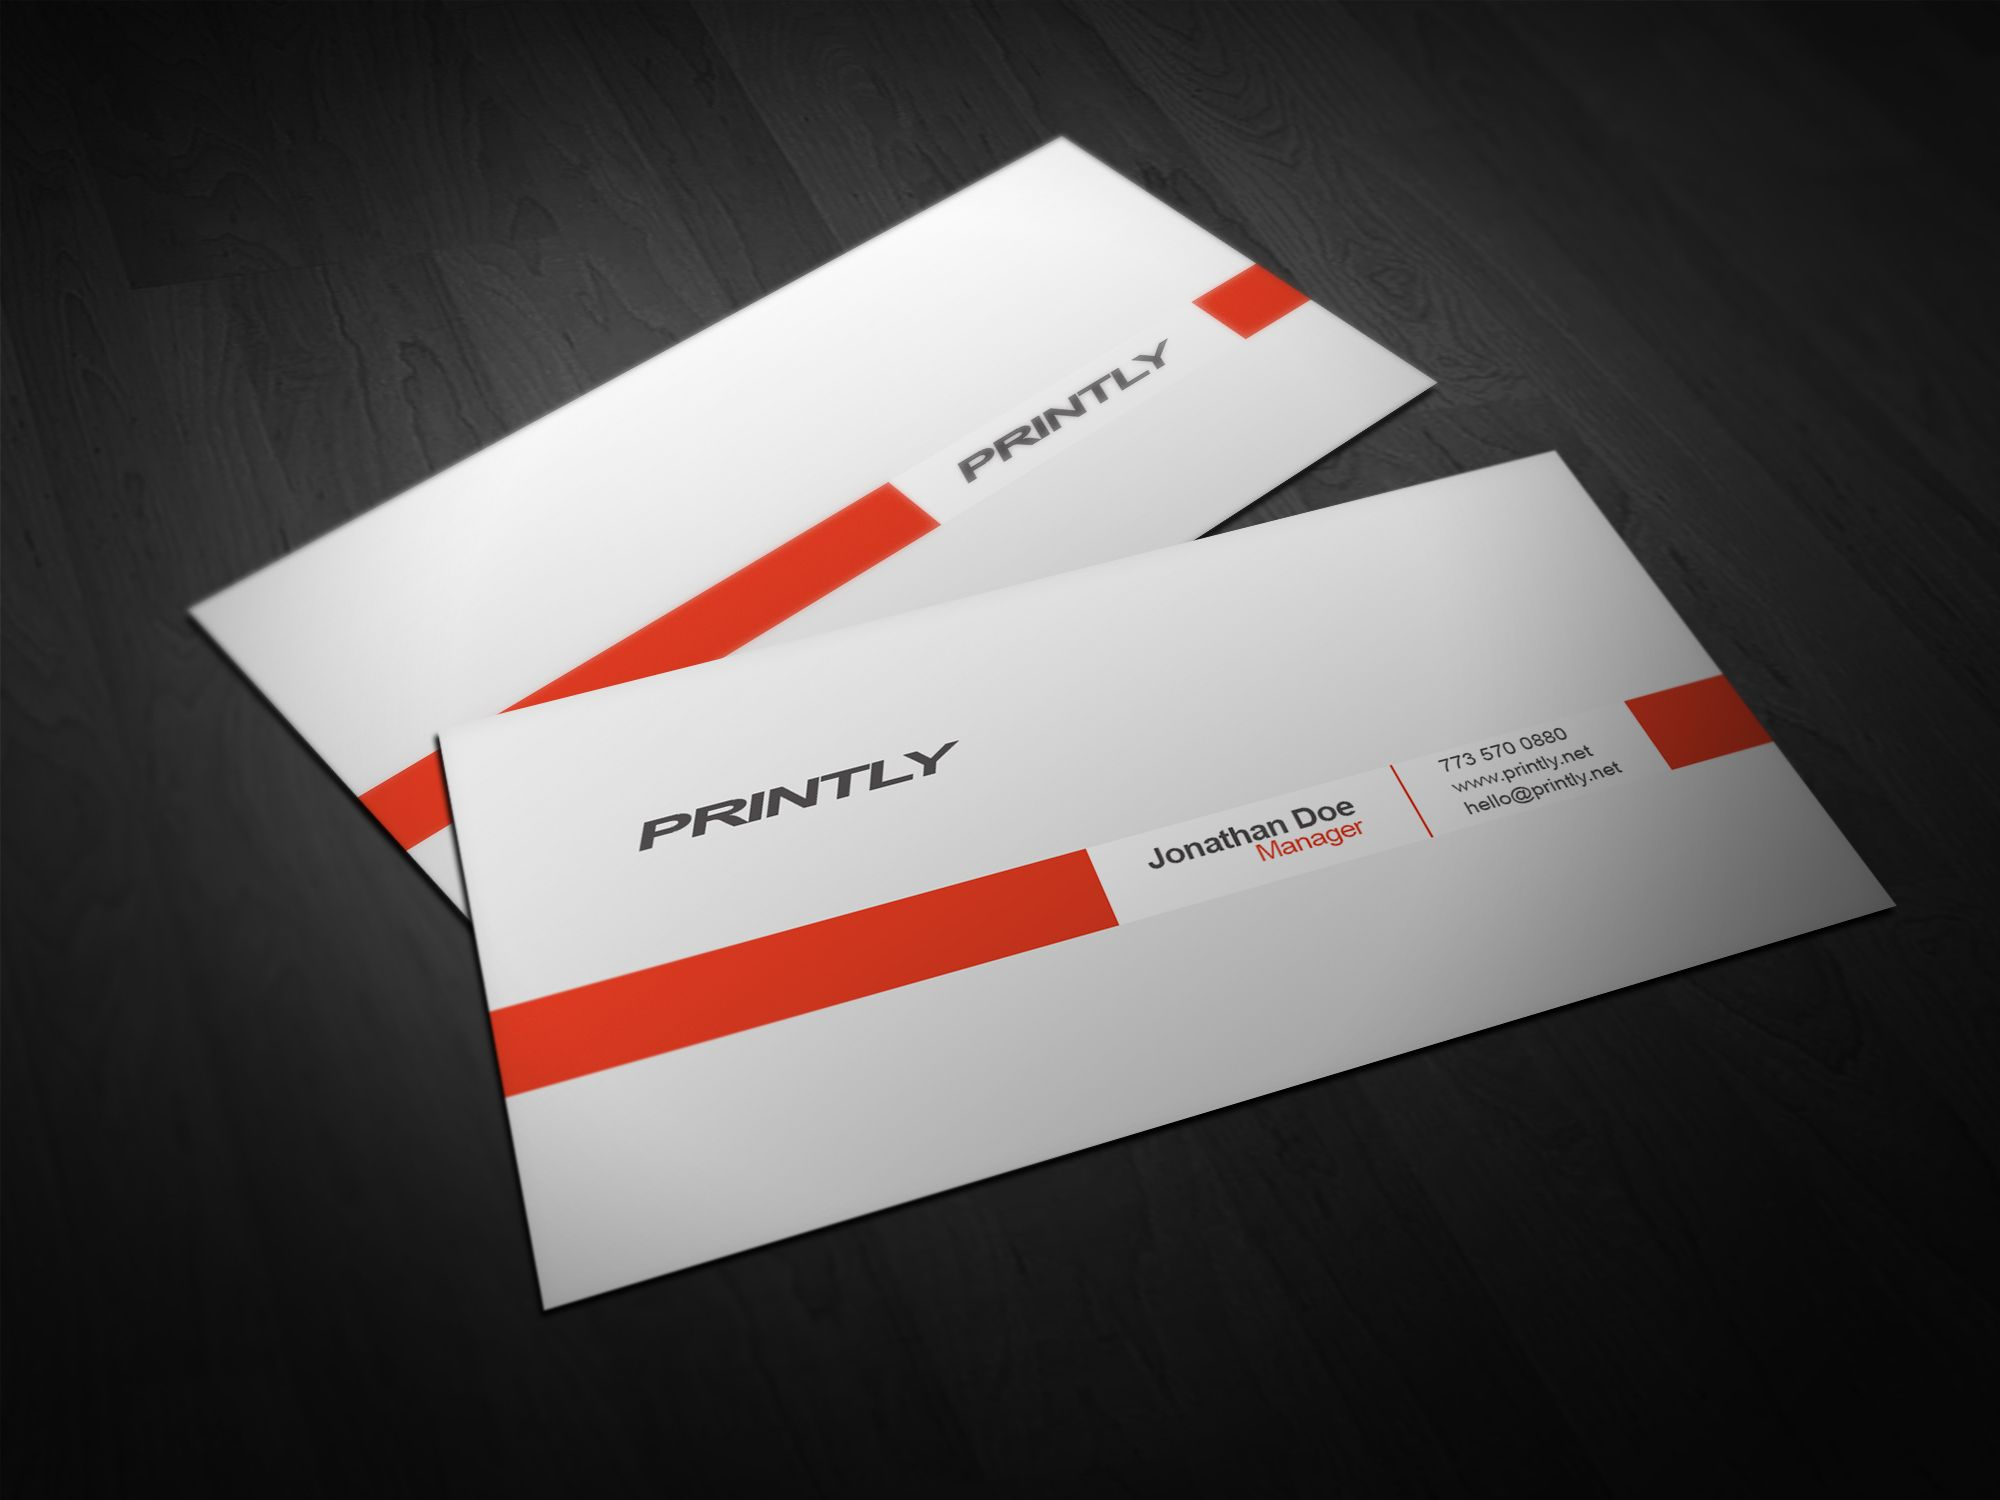 Free Printly PSD Business Card Template - PRINTLY | Design ...